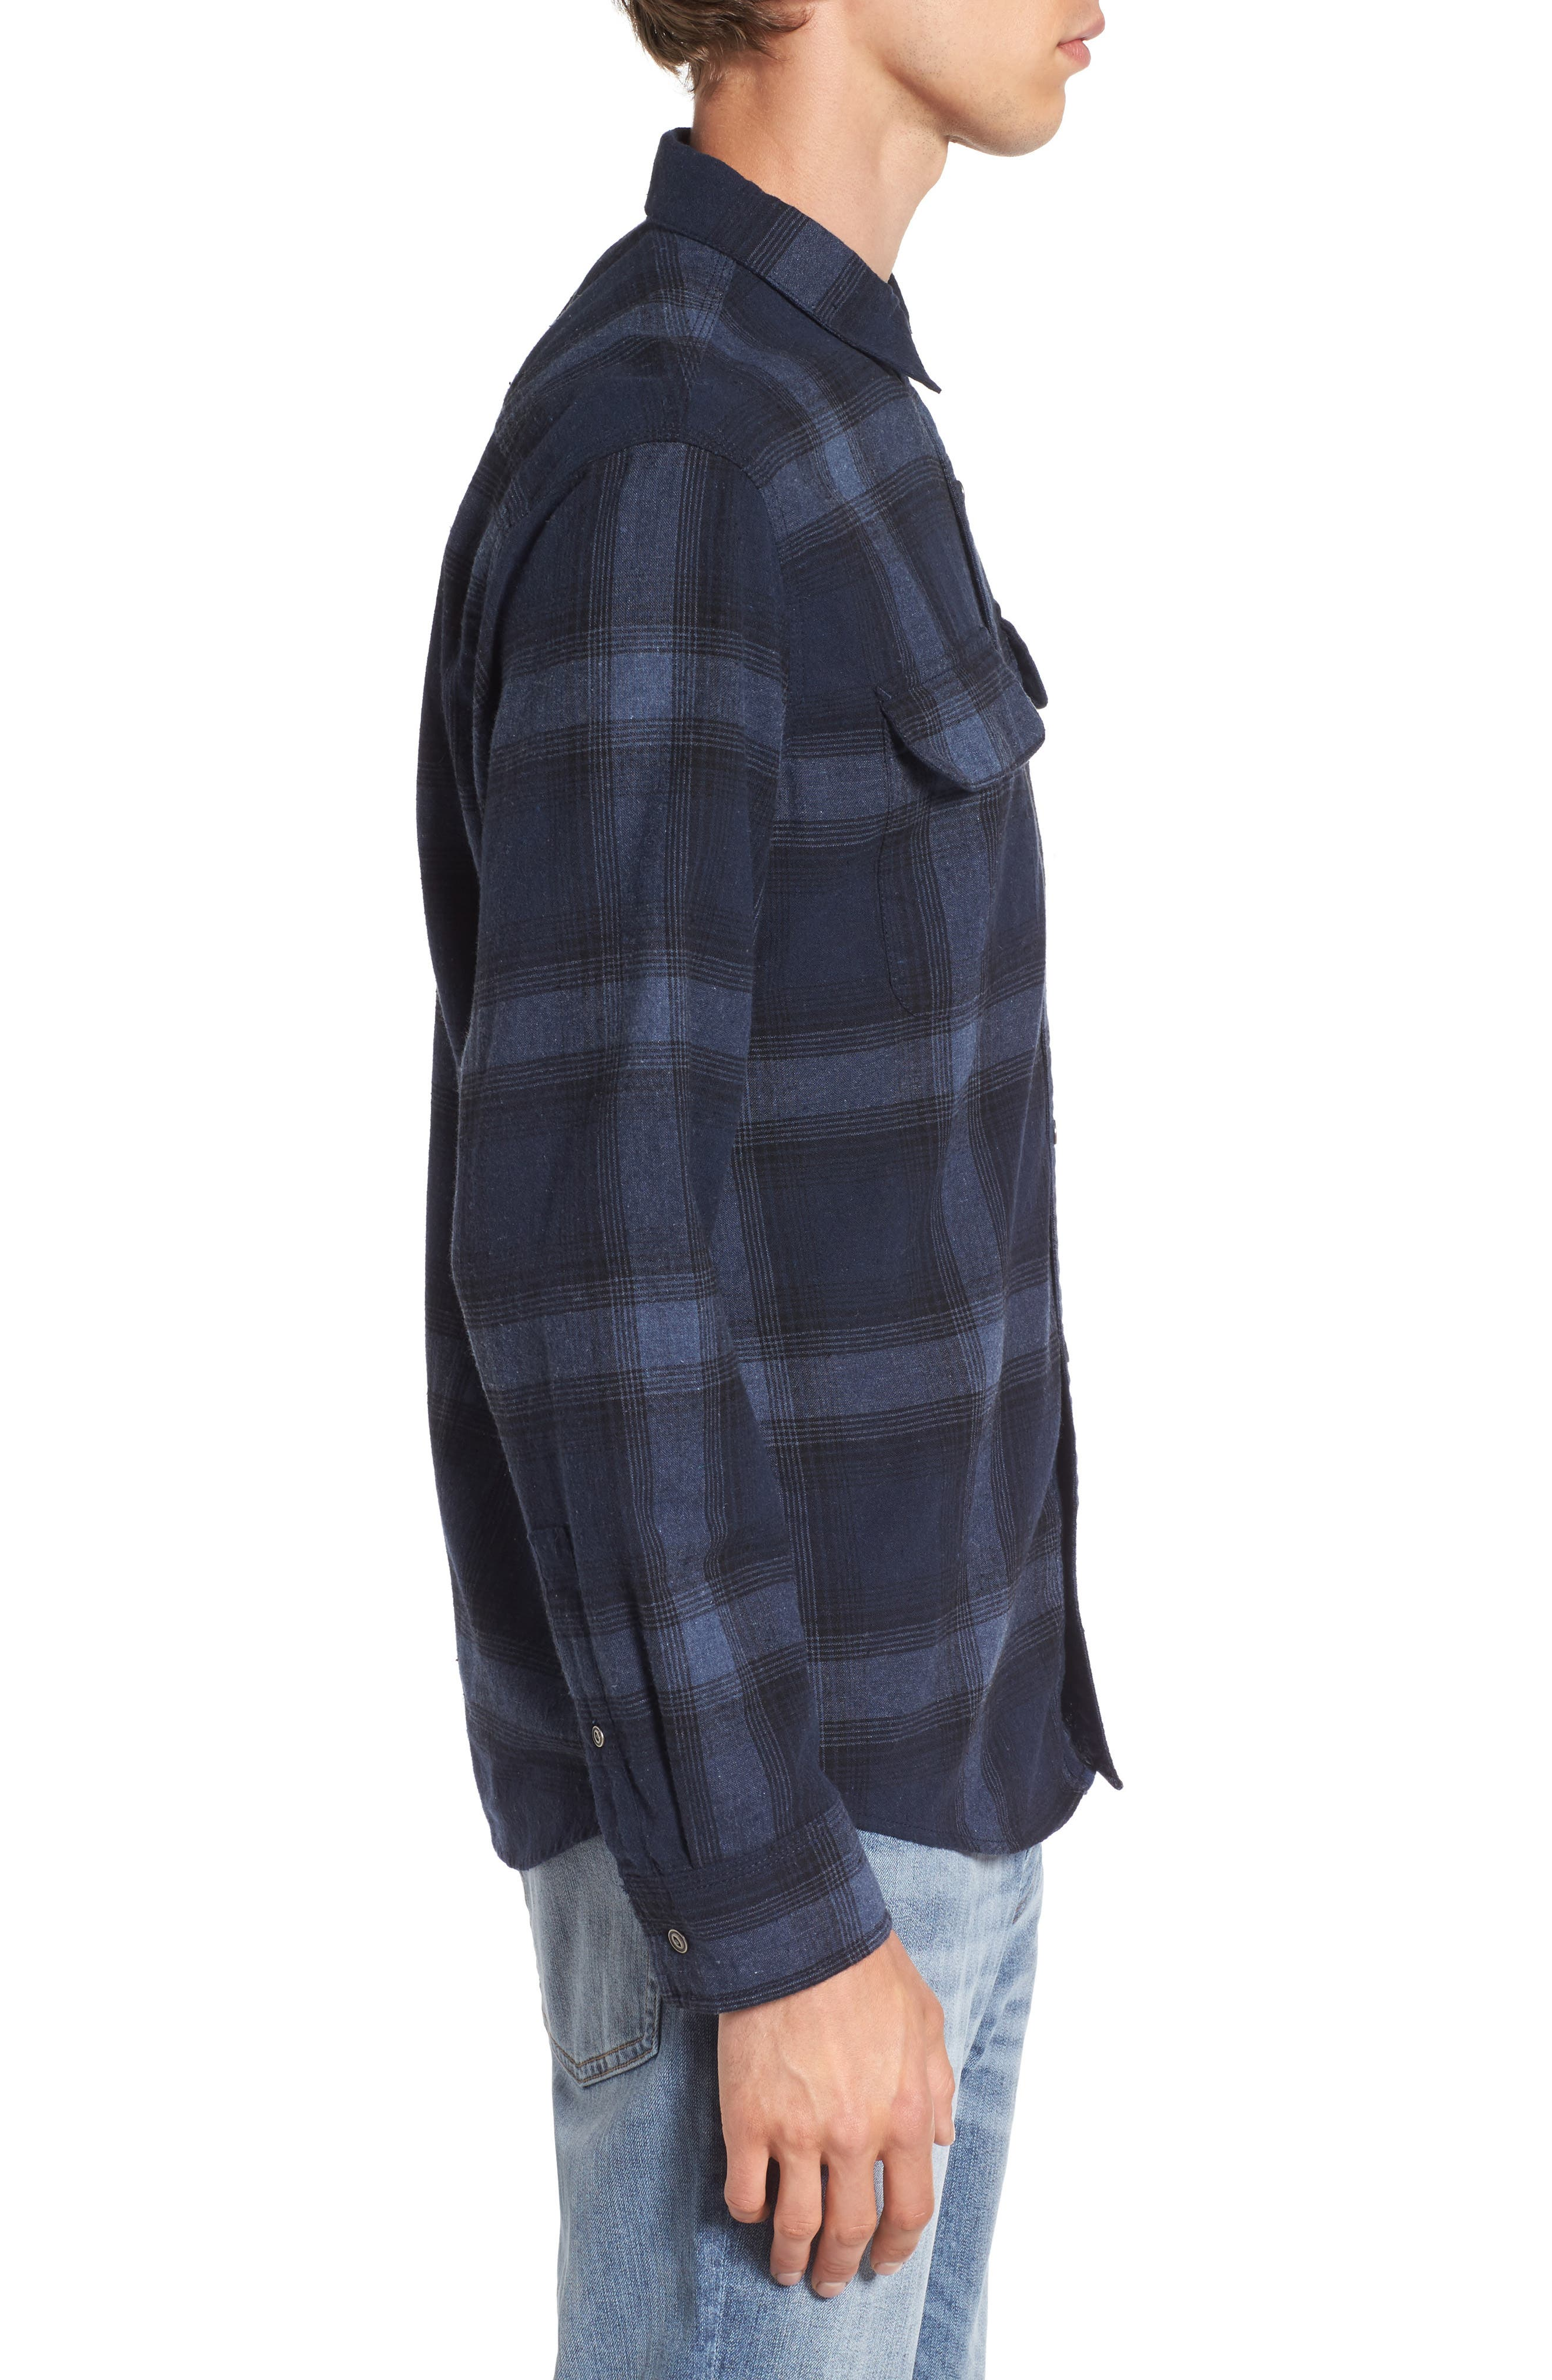 Owen Plaid Flannel Sport Shirt,                             Alternate thumbnail 3, color,                             410